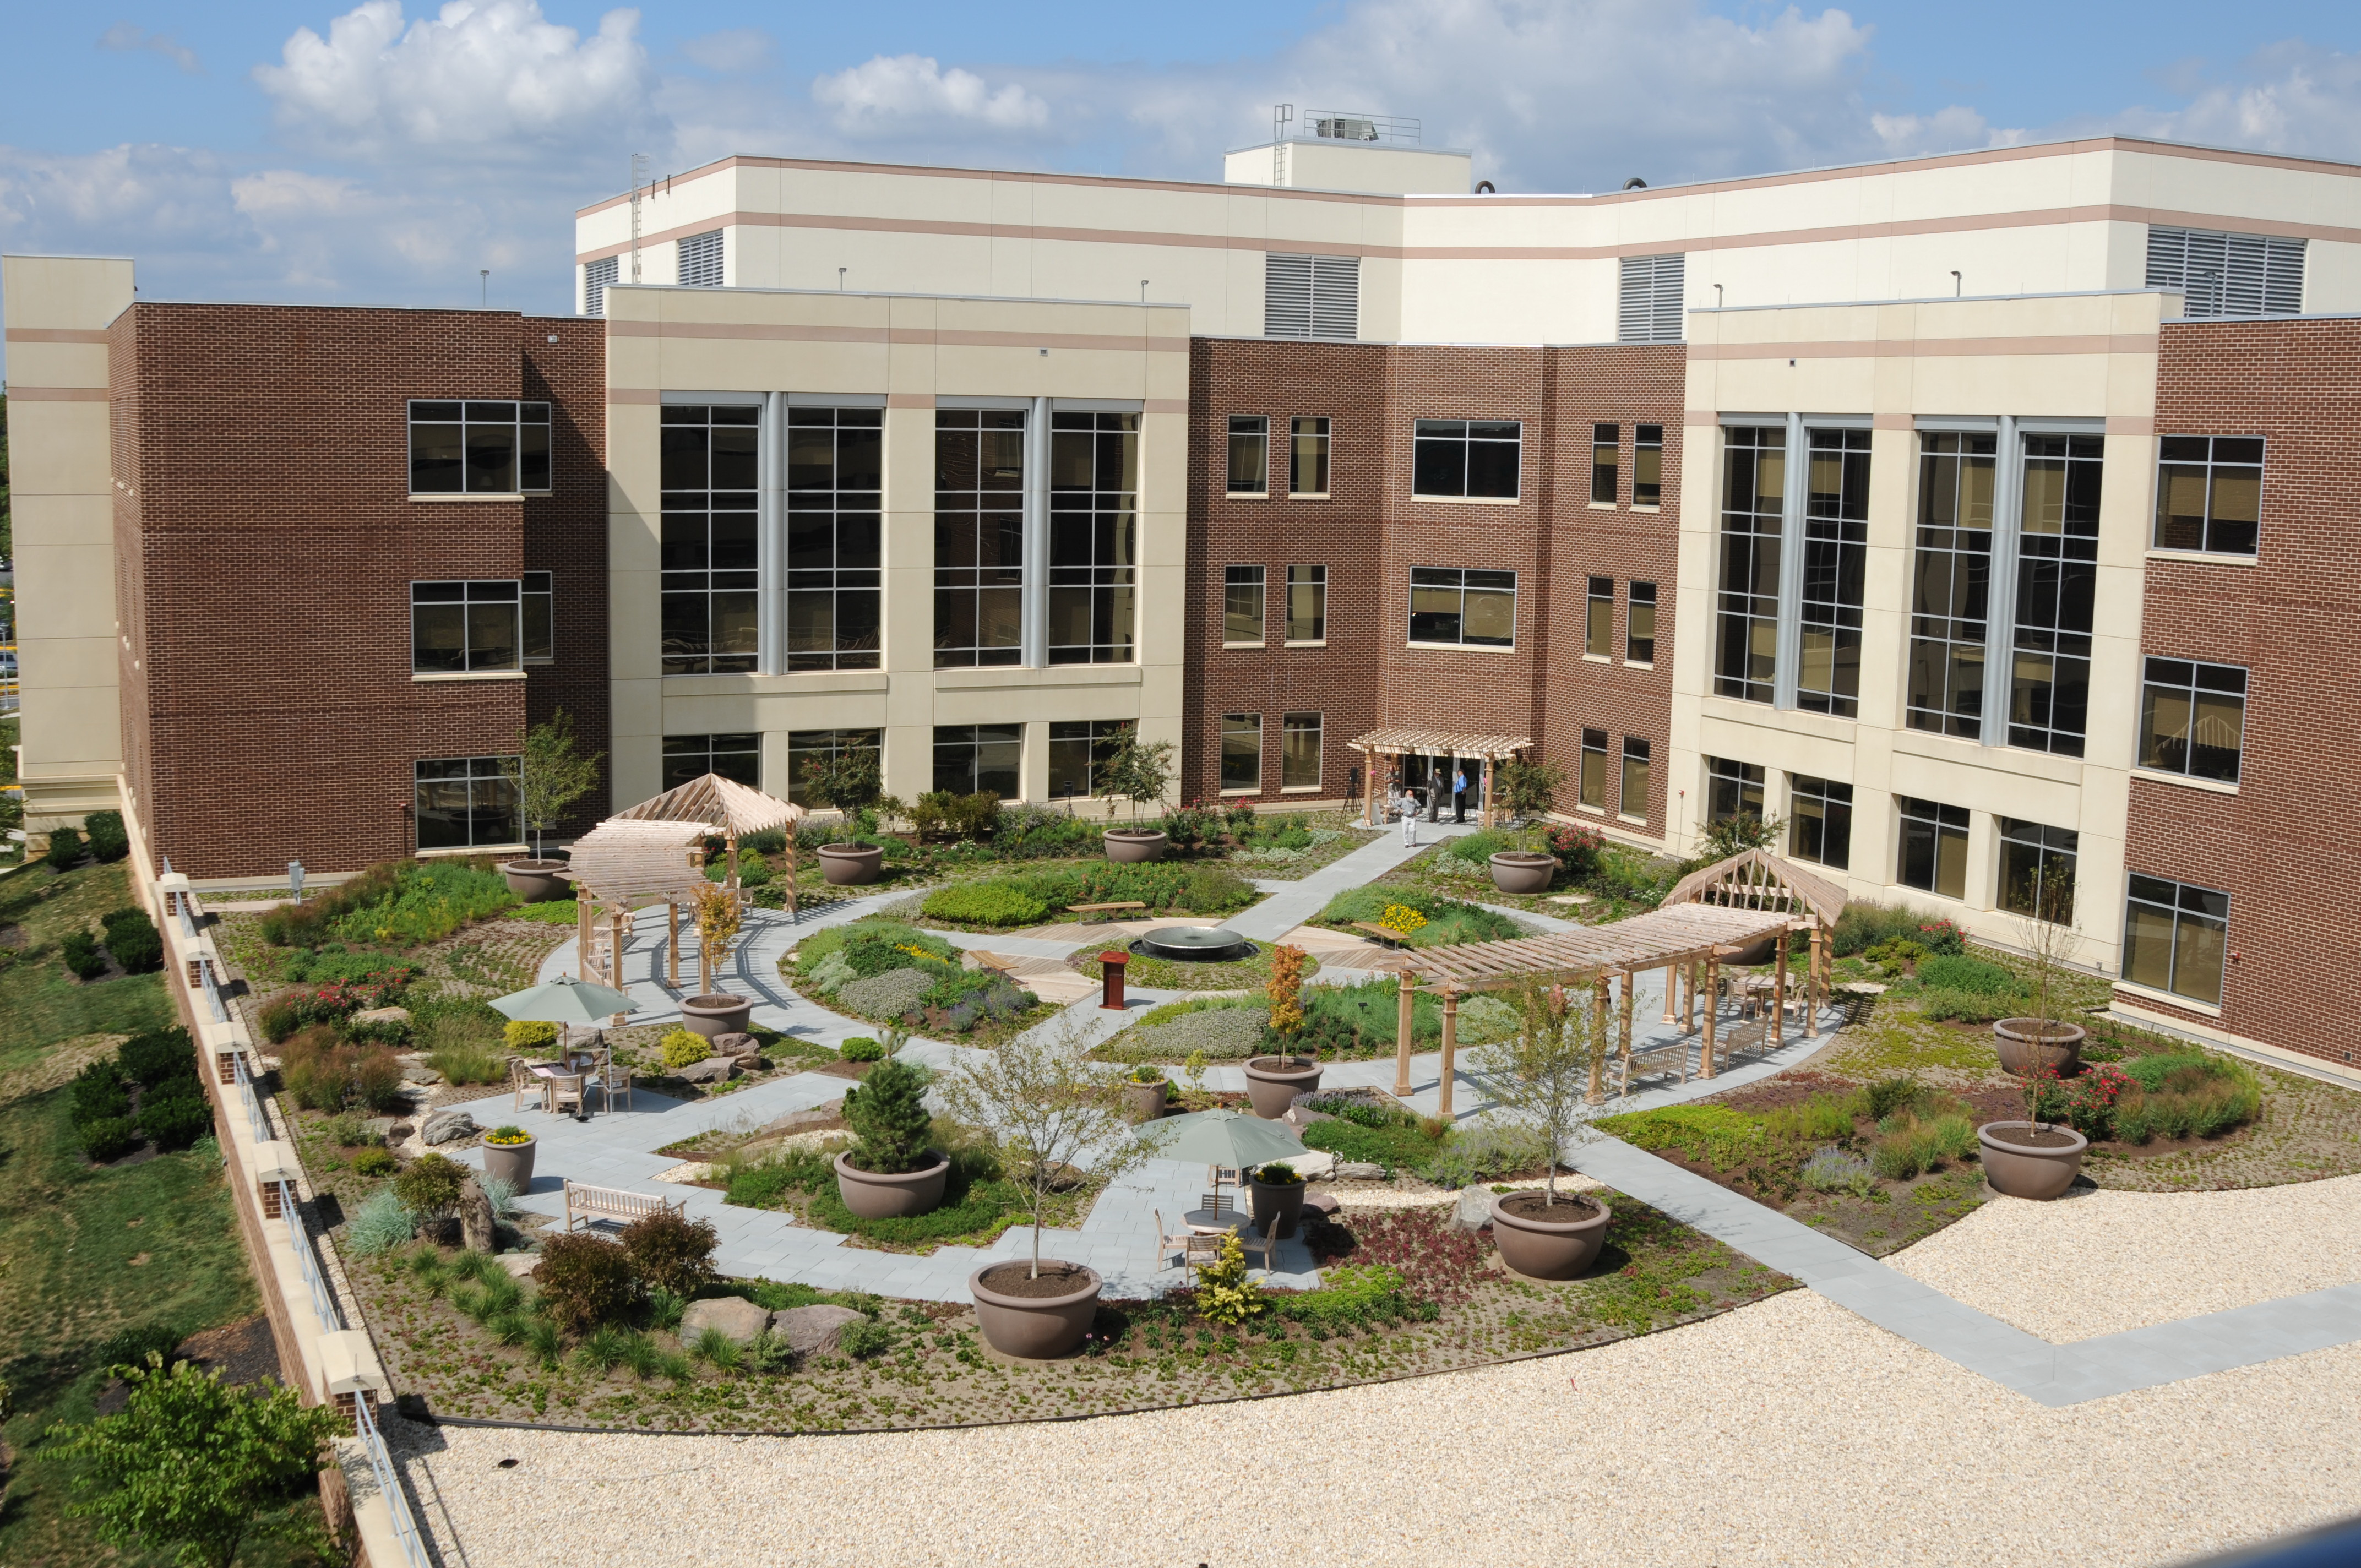 Healing Garden Receives Award For Design Adventist